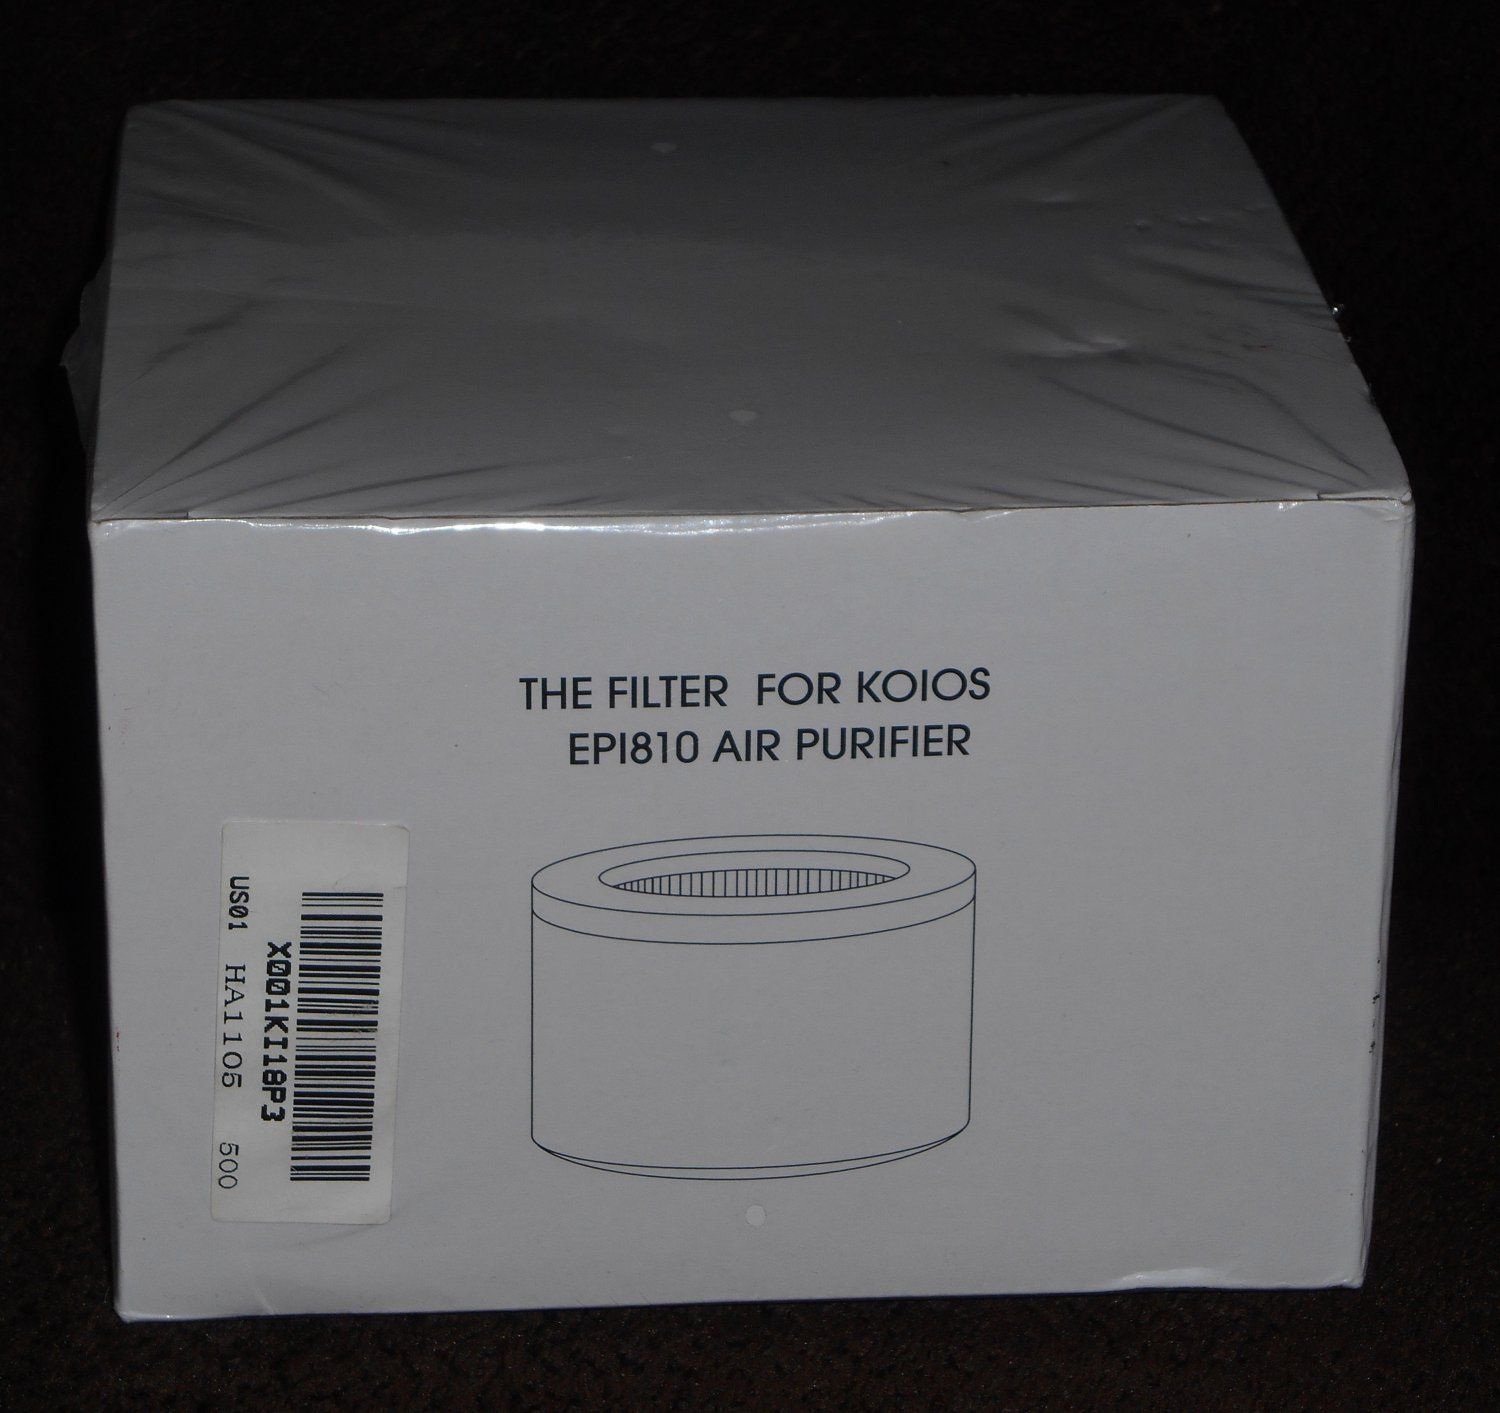 Replacement+Filter+For+Koios+Model+EP1810+Air+Purifier+NIB